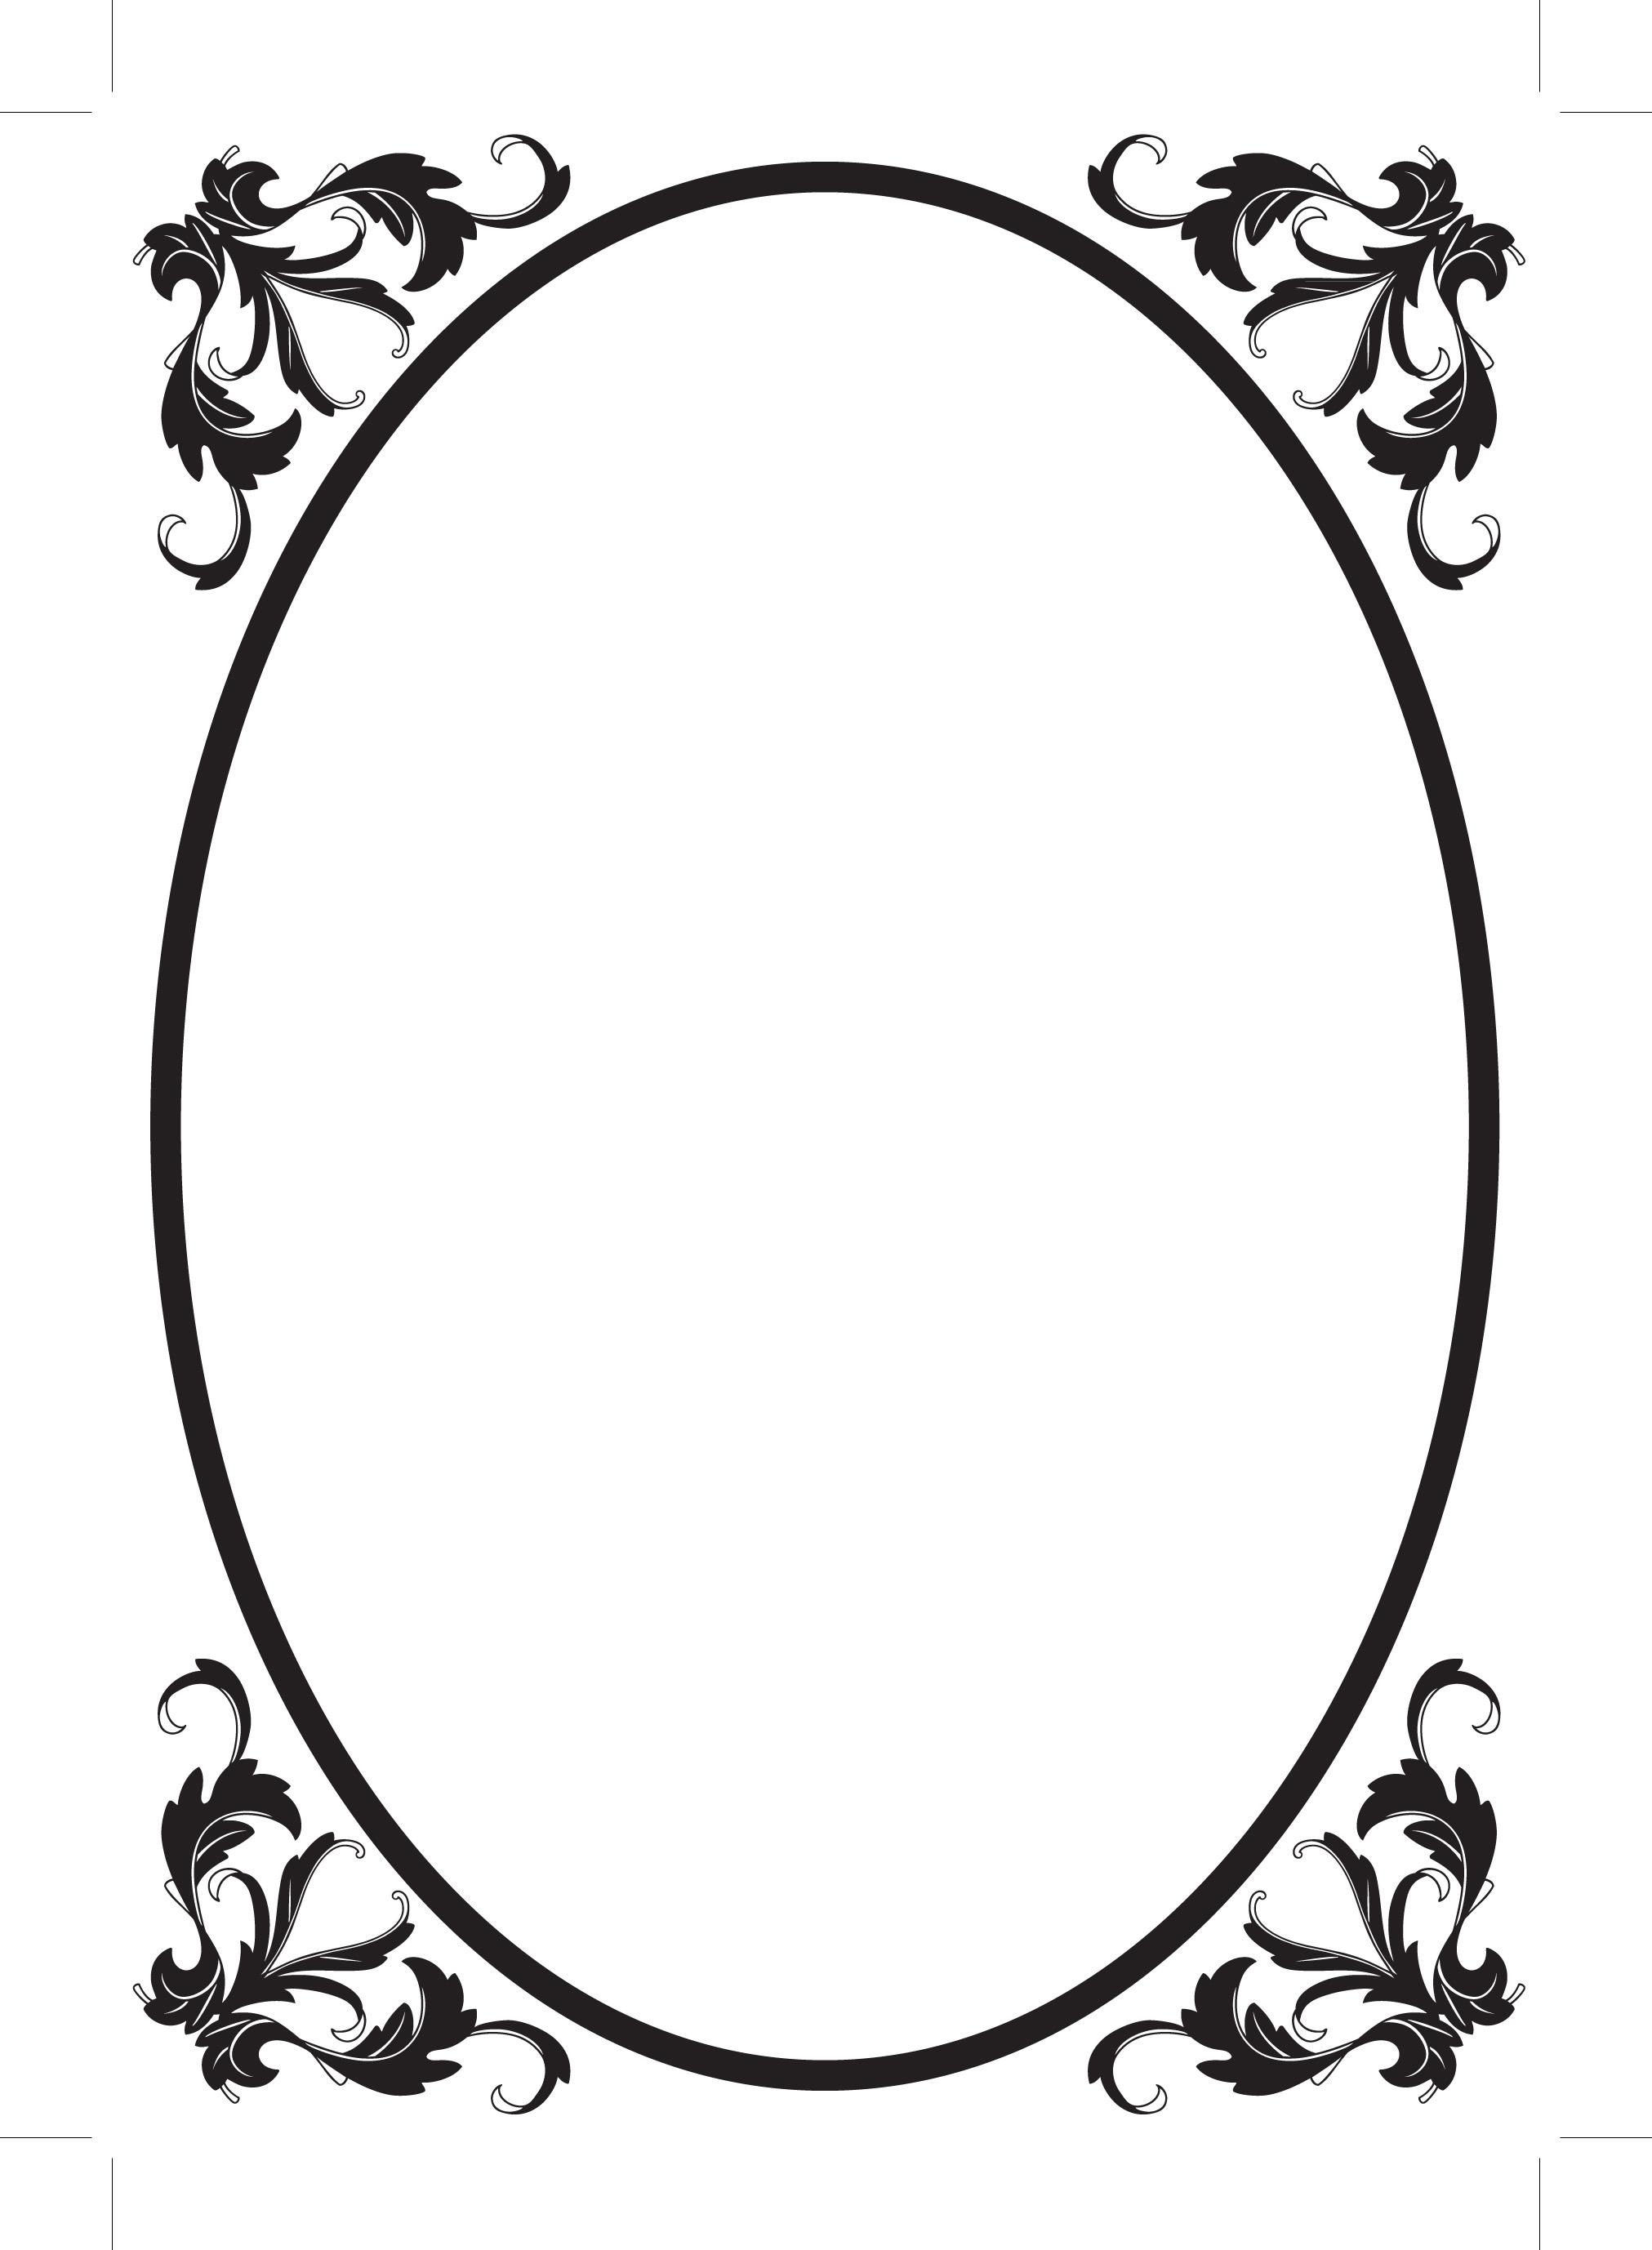 2023x2755 Oval Filigree Frame Clip Art